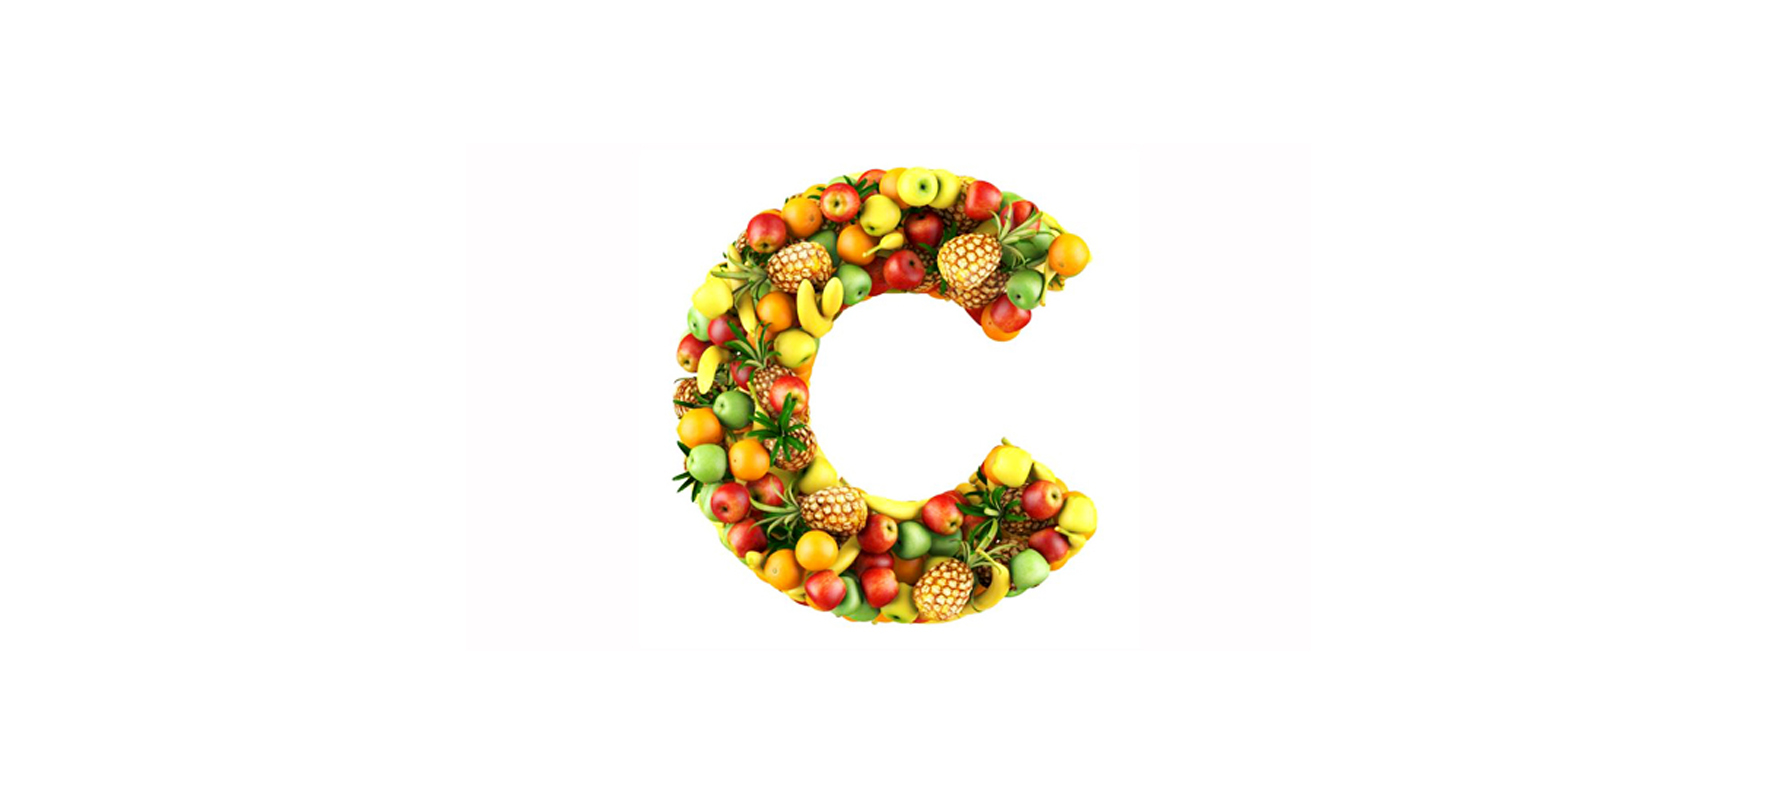 Ascorbic acid Vitamin C is used in natural skin care products for it's antioxidant and collagen producing properties